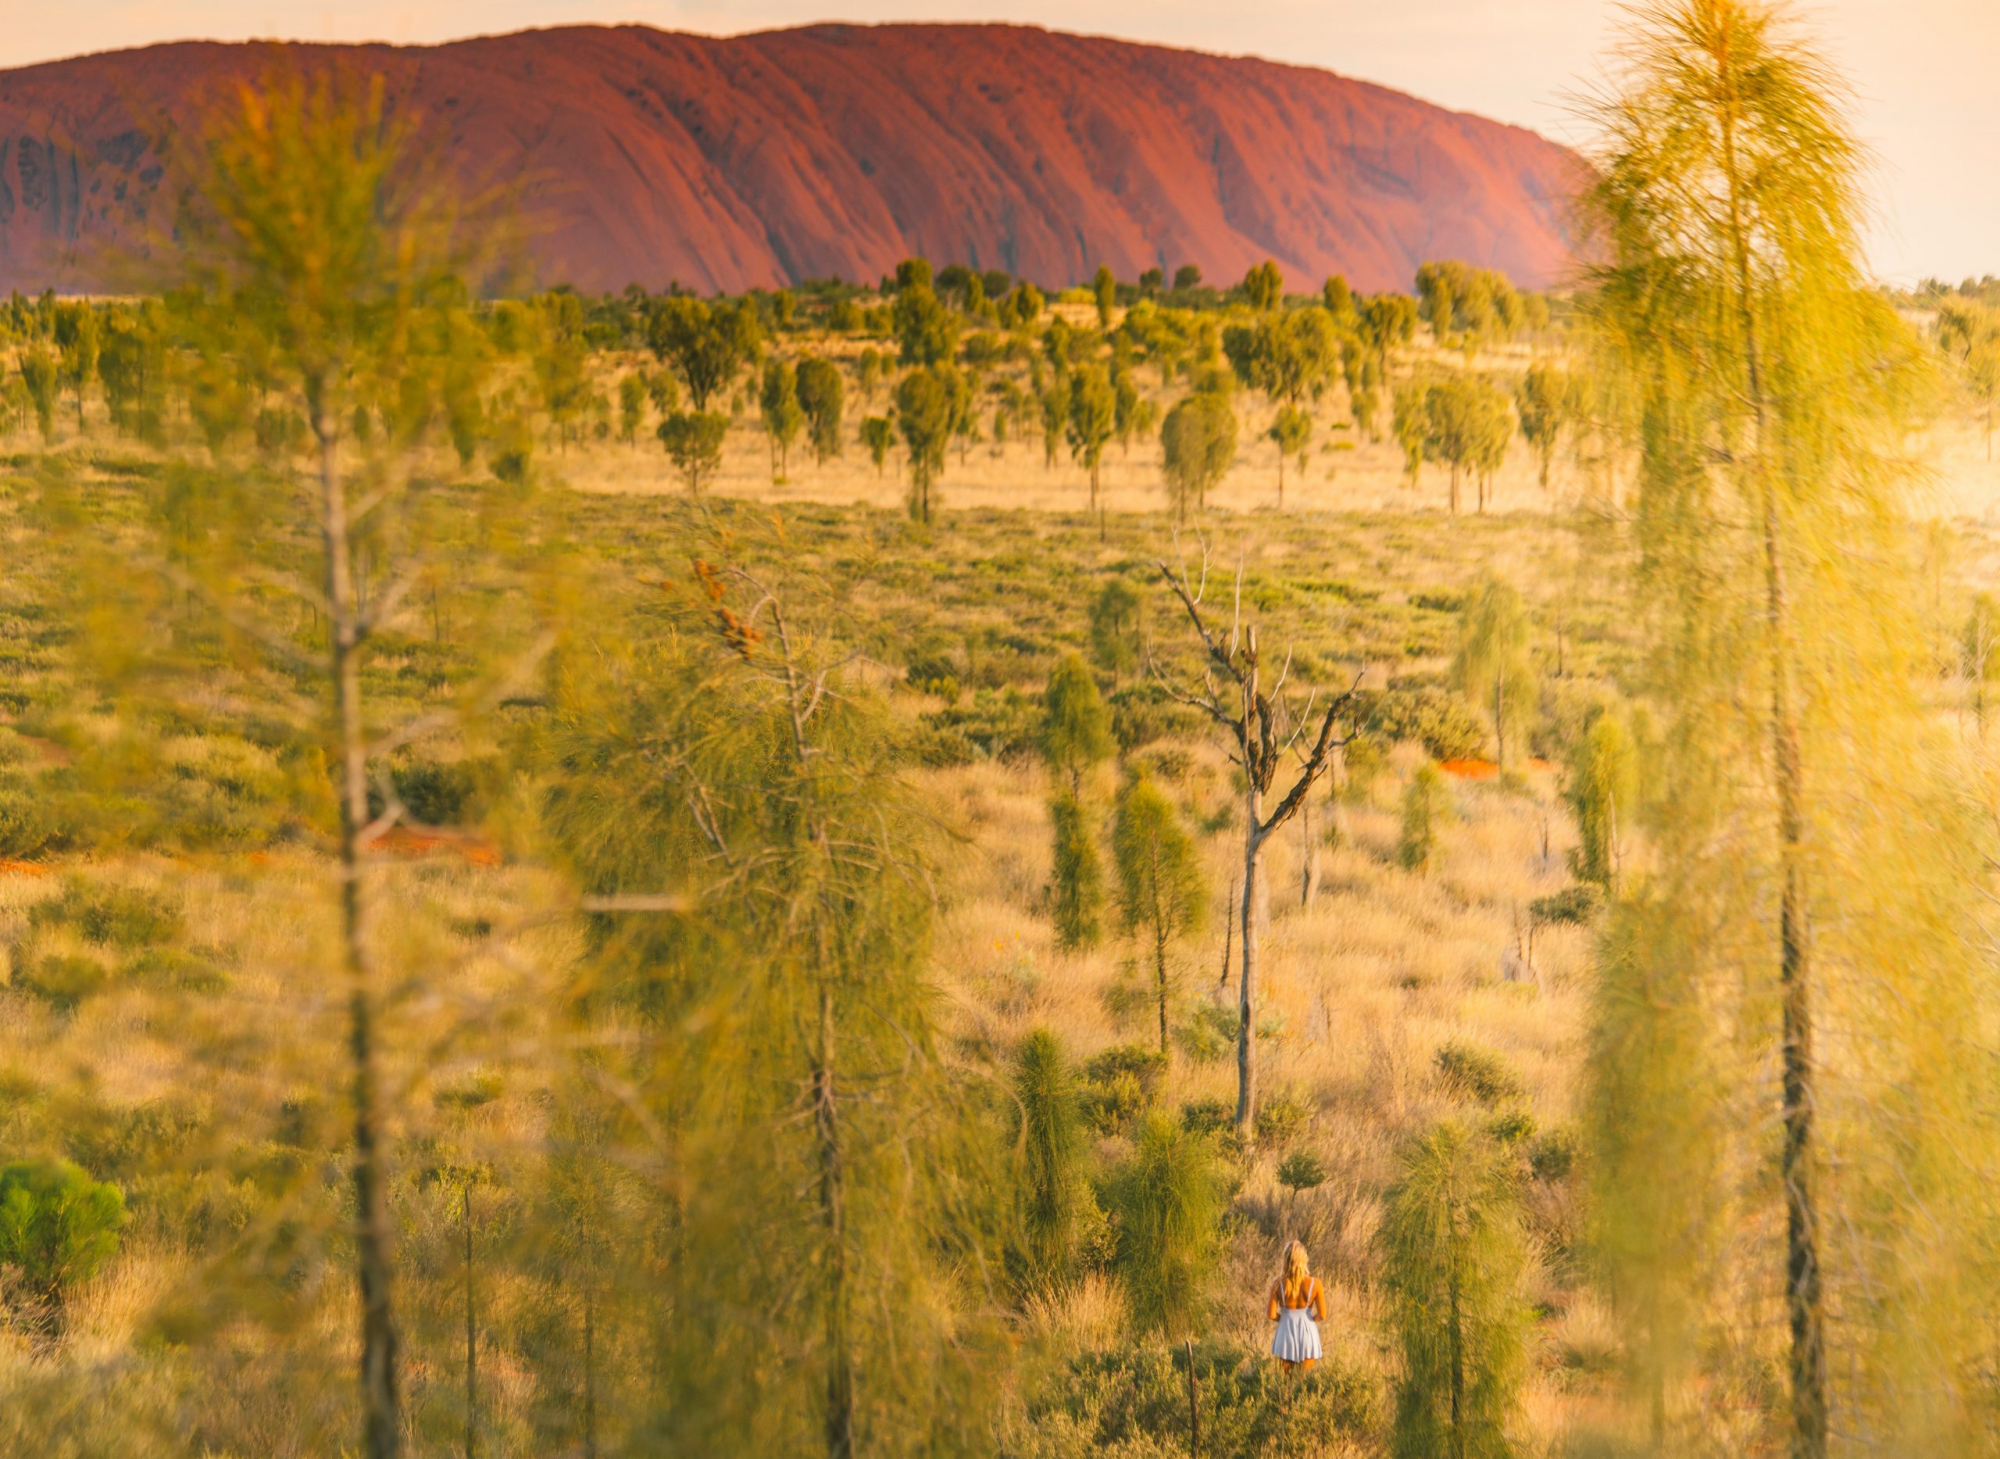 Uluru & Kata Tjuta Highlights | Grandness of Uluru, Central Australia, Northern Territory